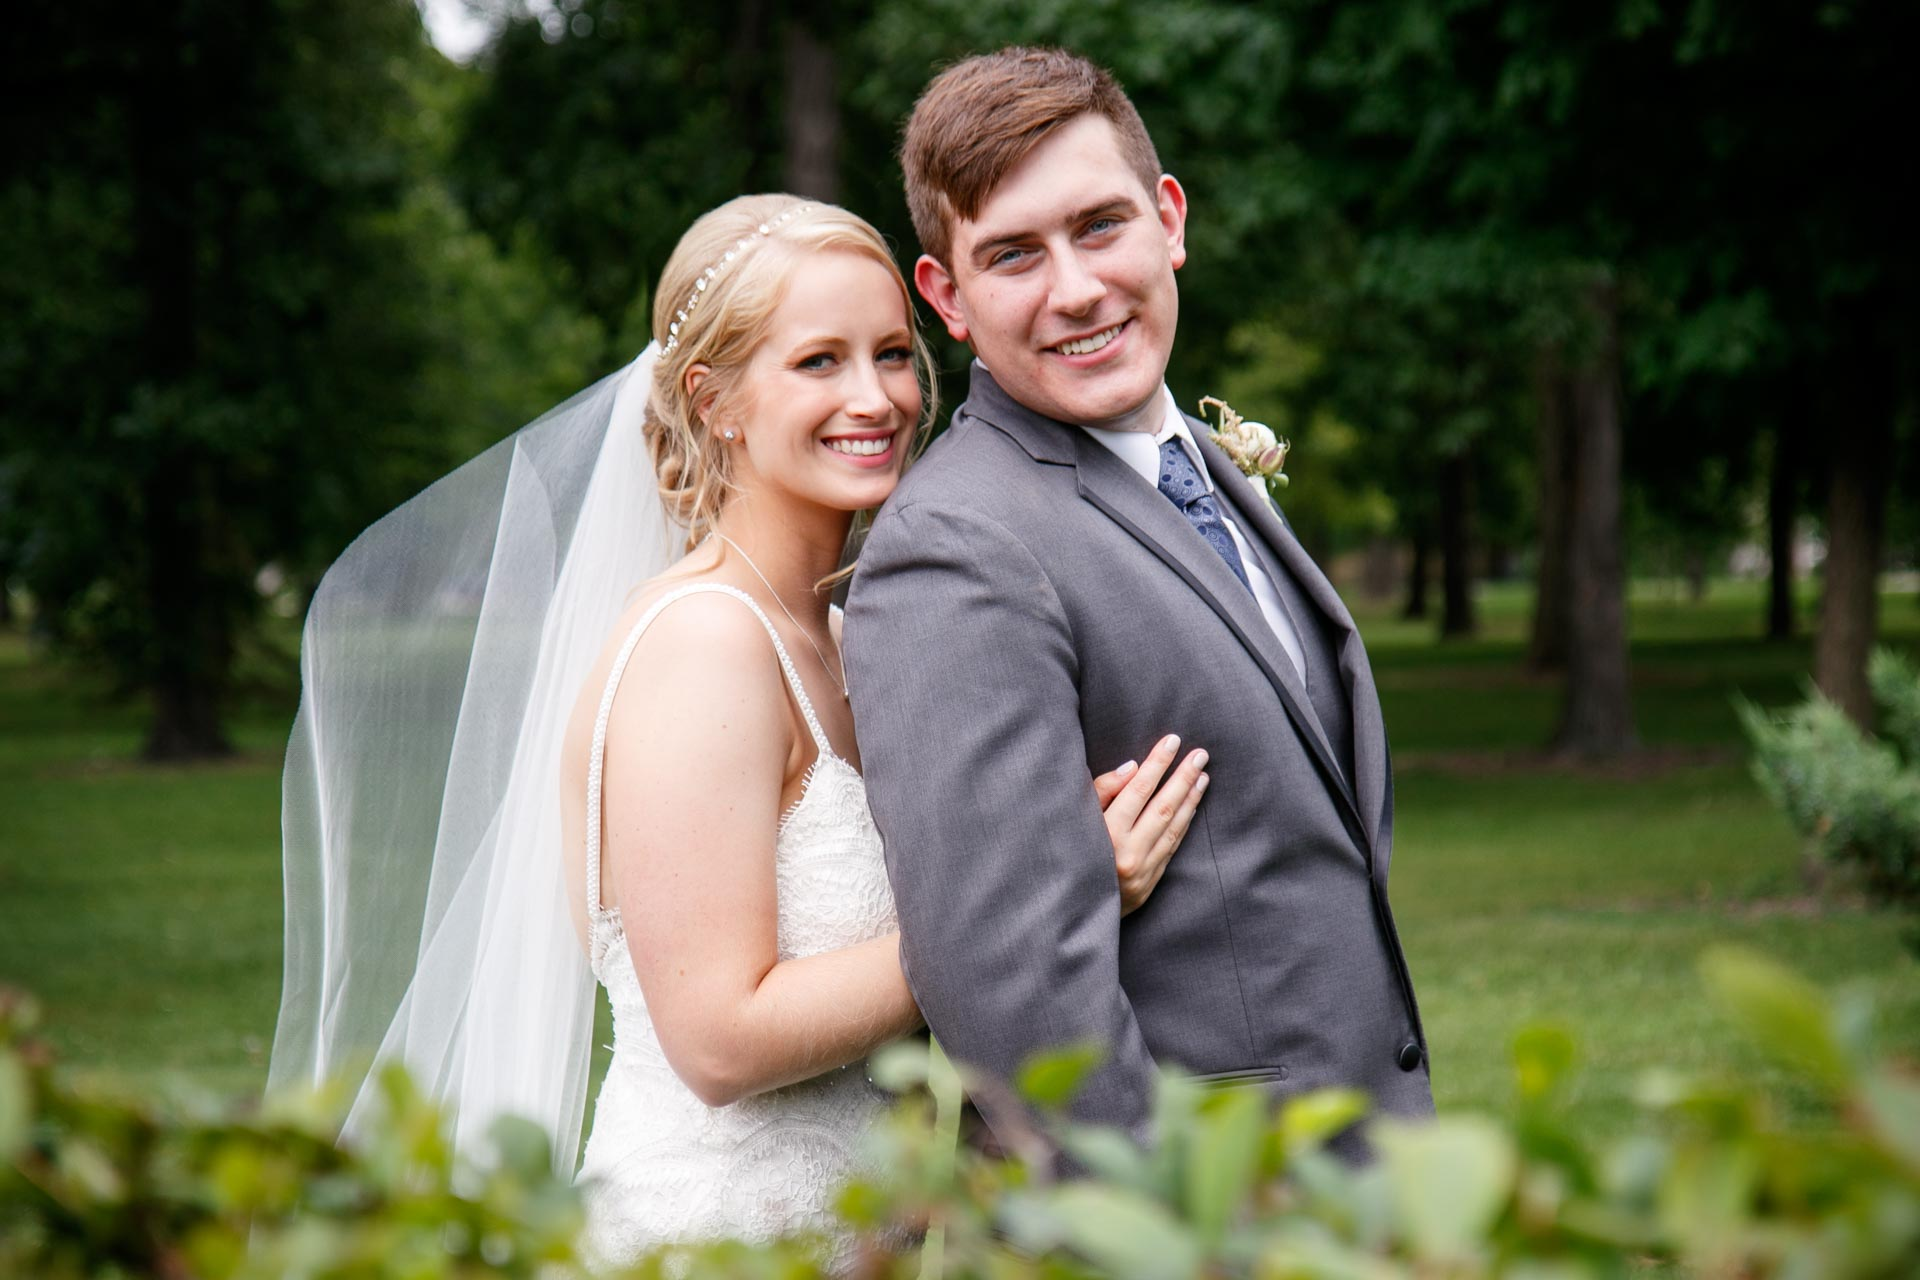 neenah-riverside-park-bride-groom-adam-shea-photography-green-bay-appleton-neenah-photographer-15.jpg